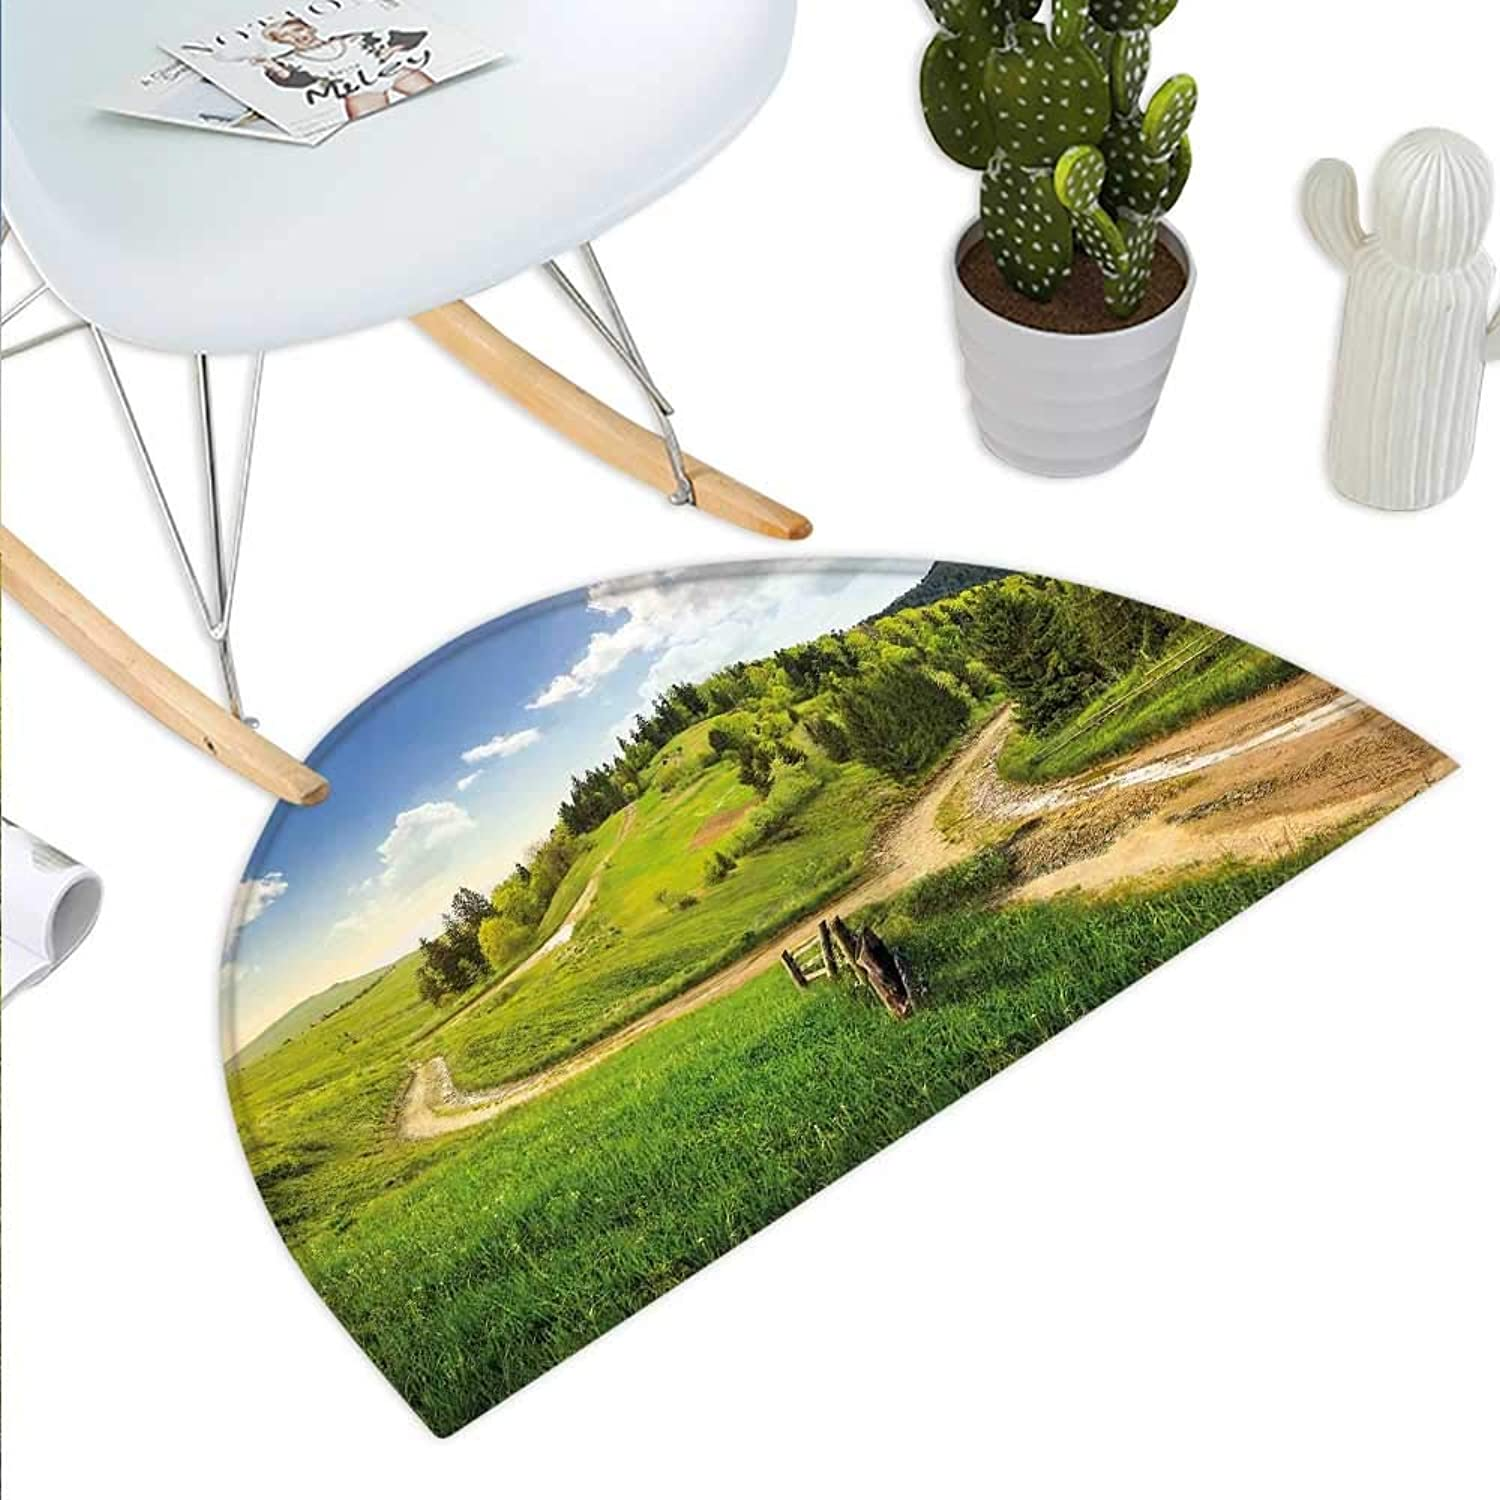 Landscape Semicircle Doormat Hillside Meadows Cloudy Sky Fence Near The Road with Fir Trees on Both Sides Halfmoon doormats H 39.3  xD 59  Green bluee